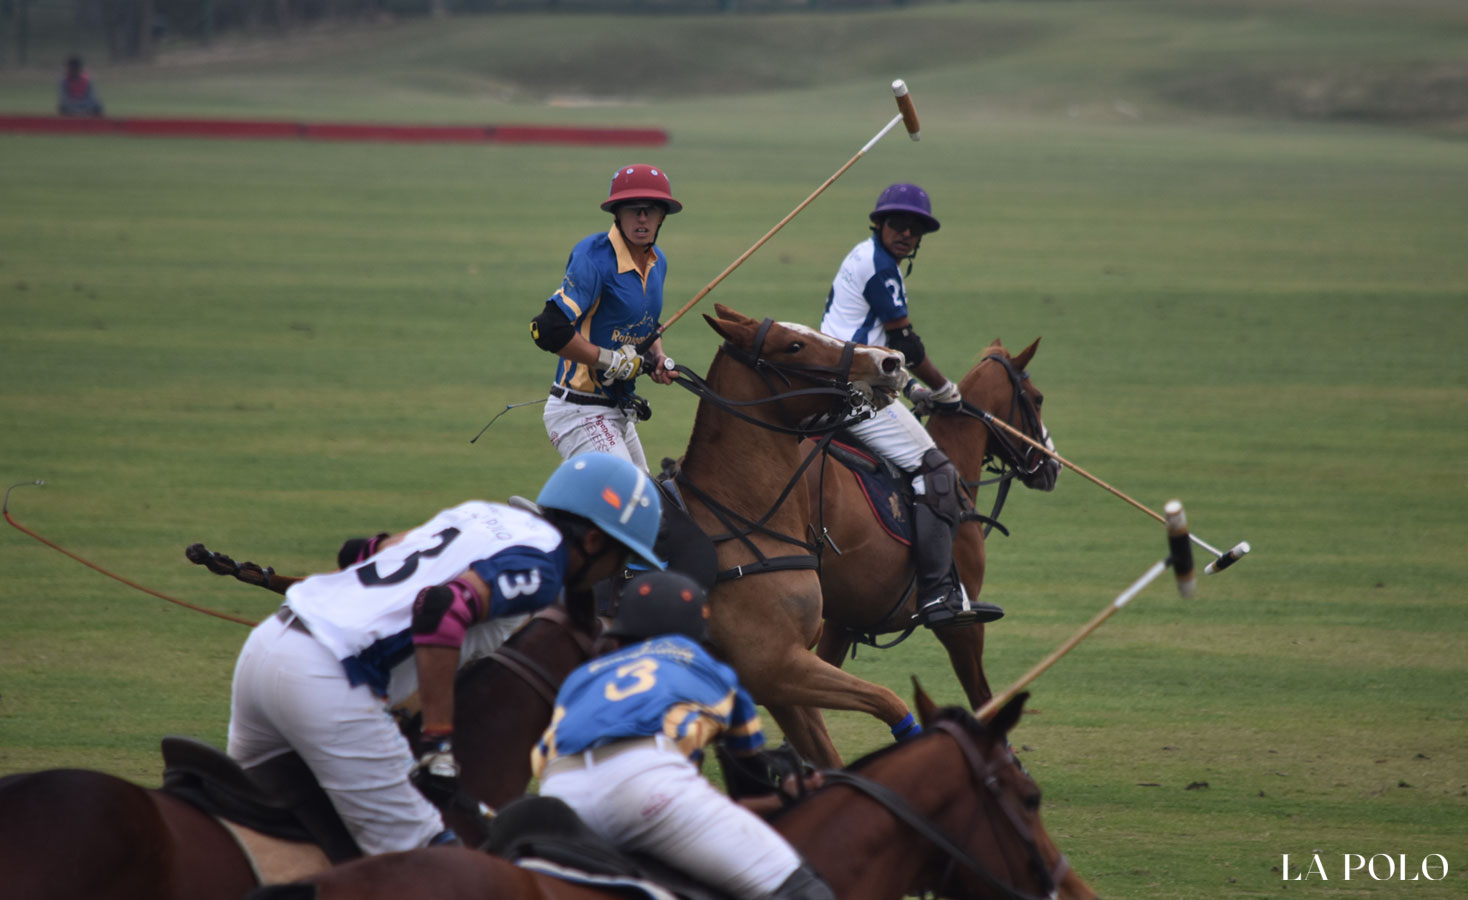 The Finals Of Cavalry Gold Cup